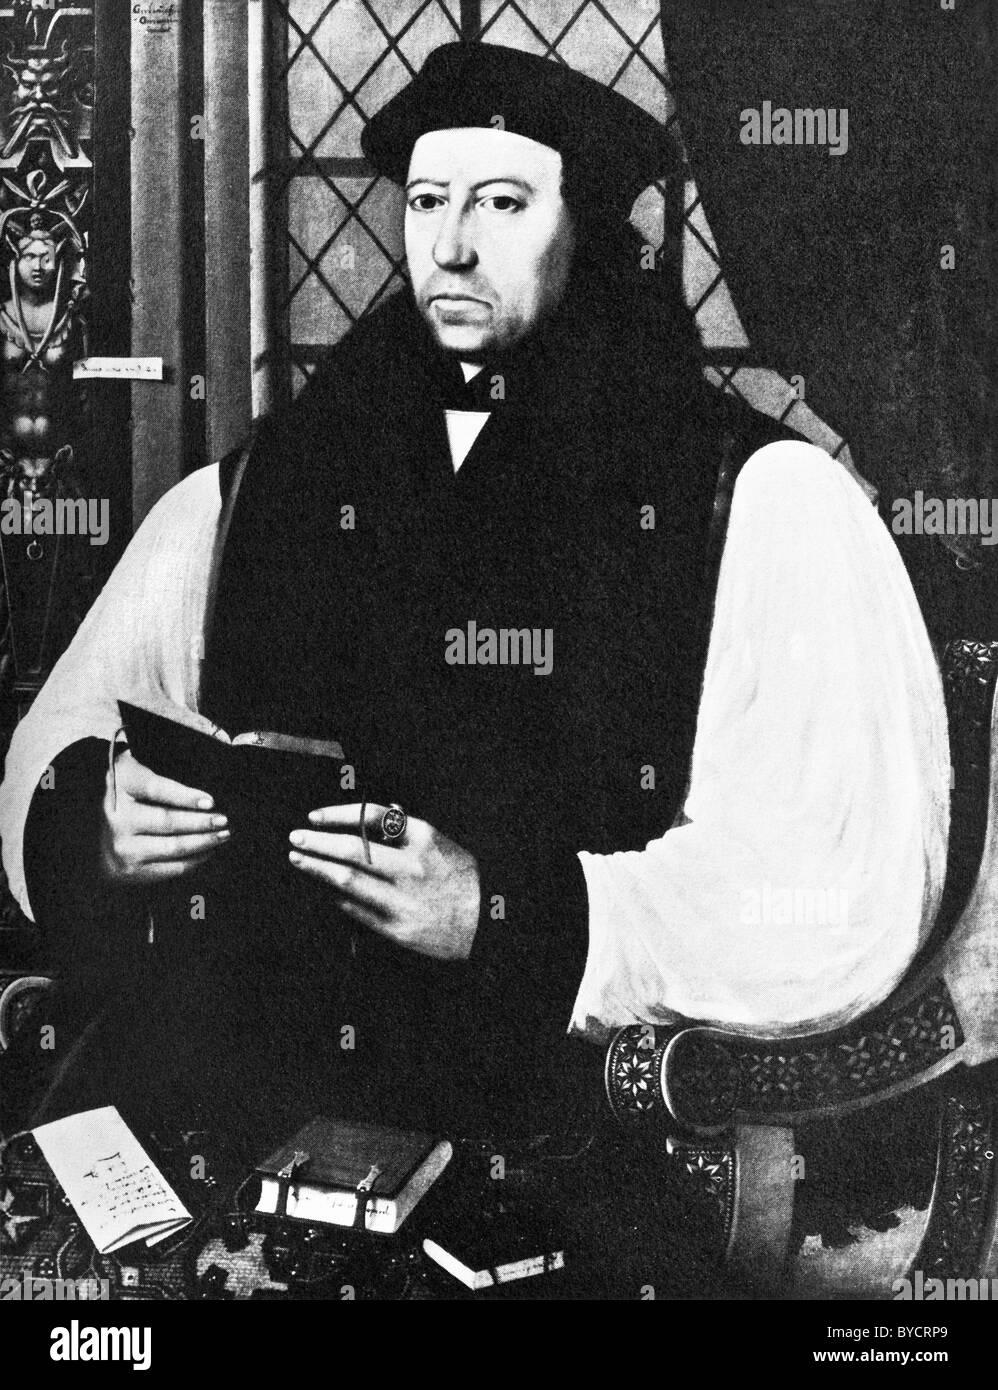 Portrait painting of Thomas Cranmer (1489 - 1556) - Protestant Archbishop of Canterbury and a leader of the English - Stock Image